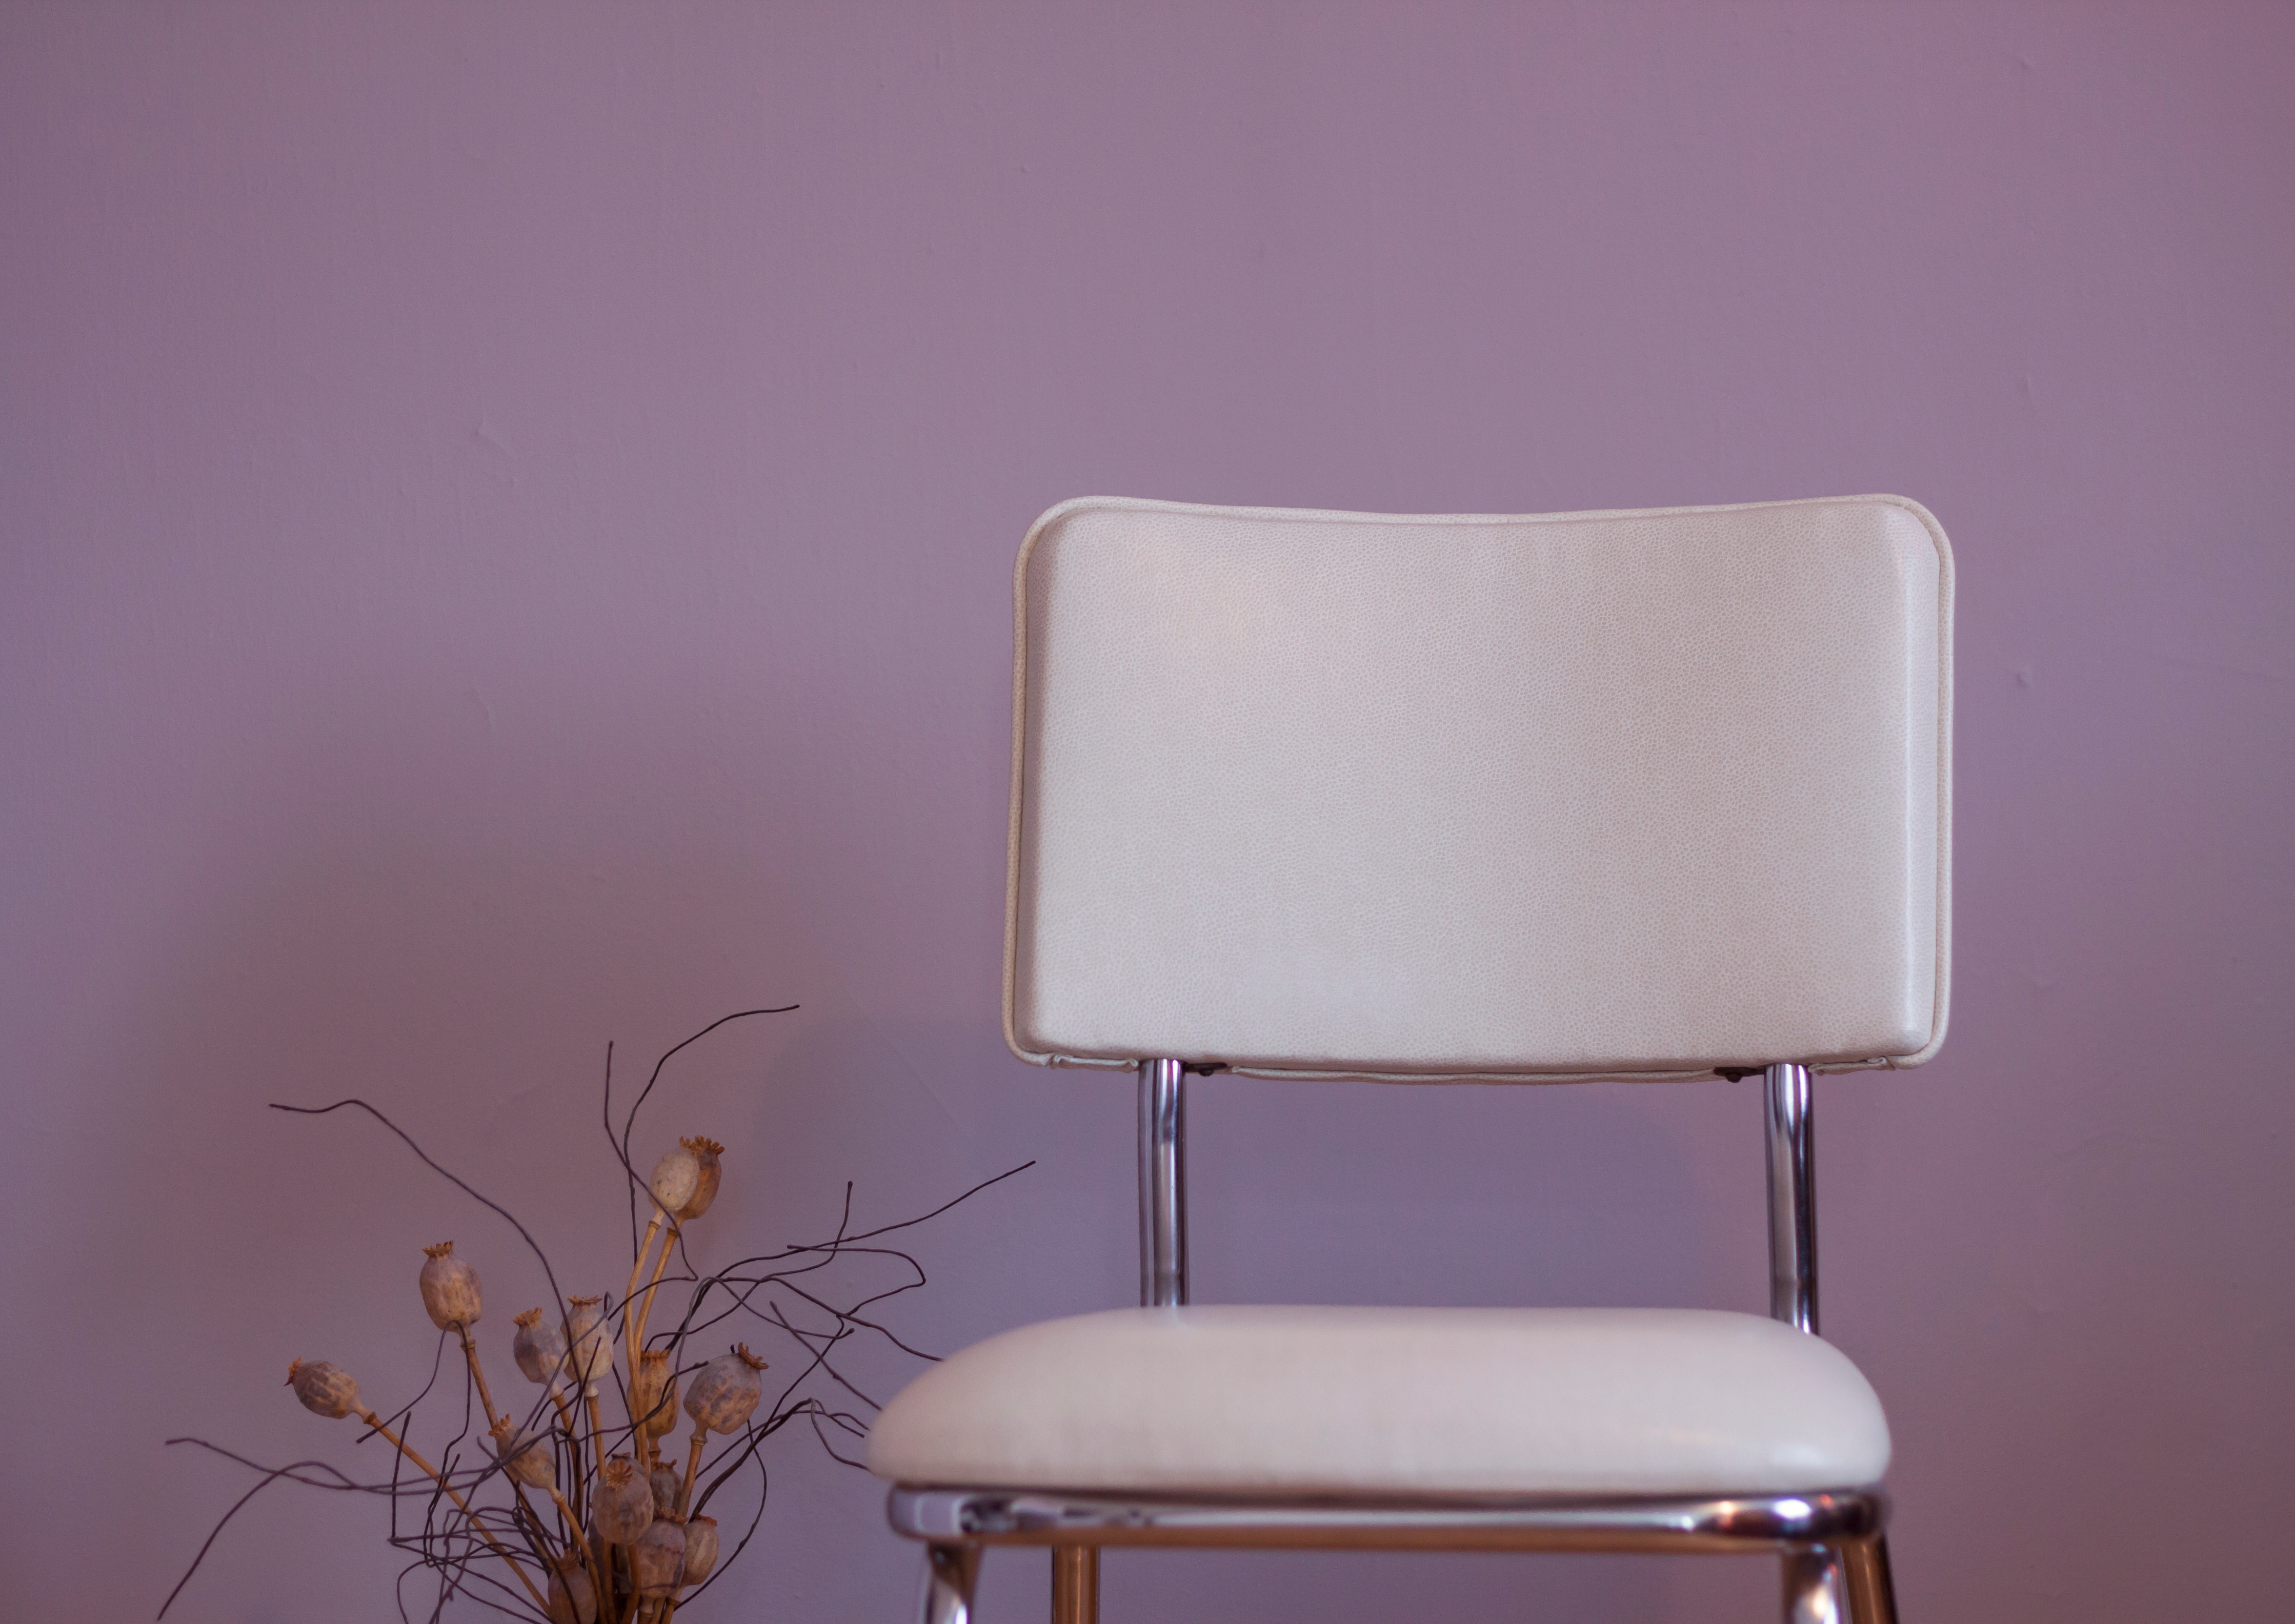 Upholstery or Decor Consultation